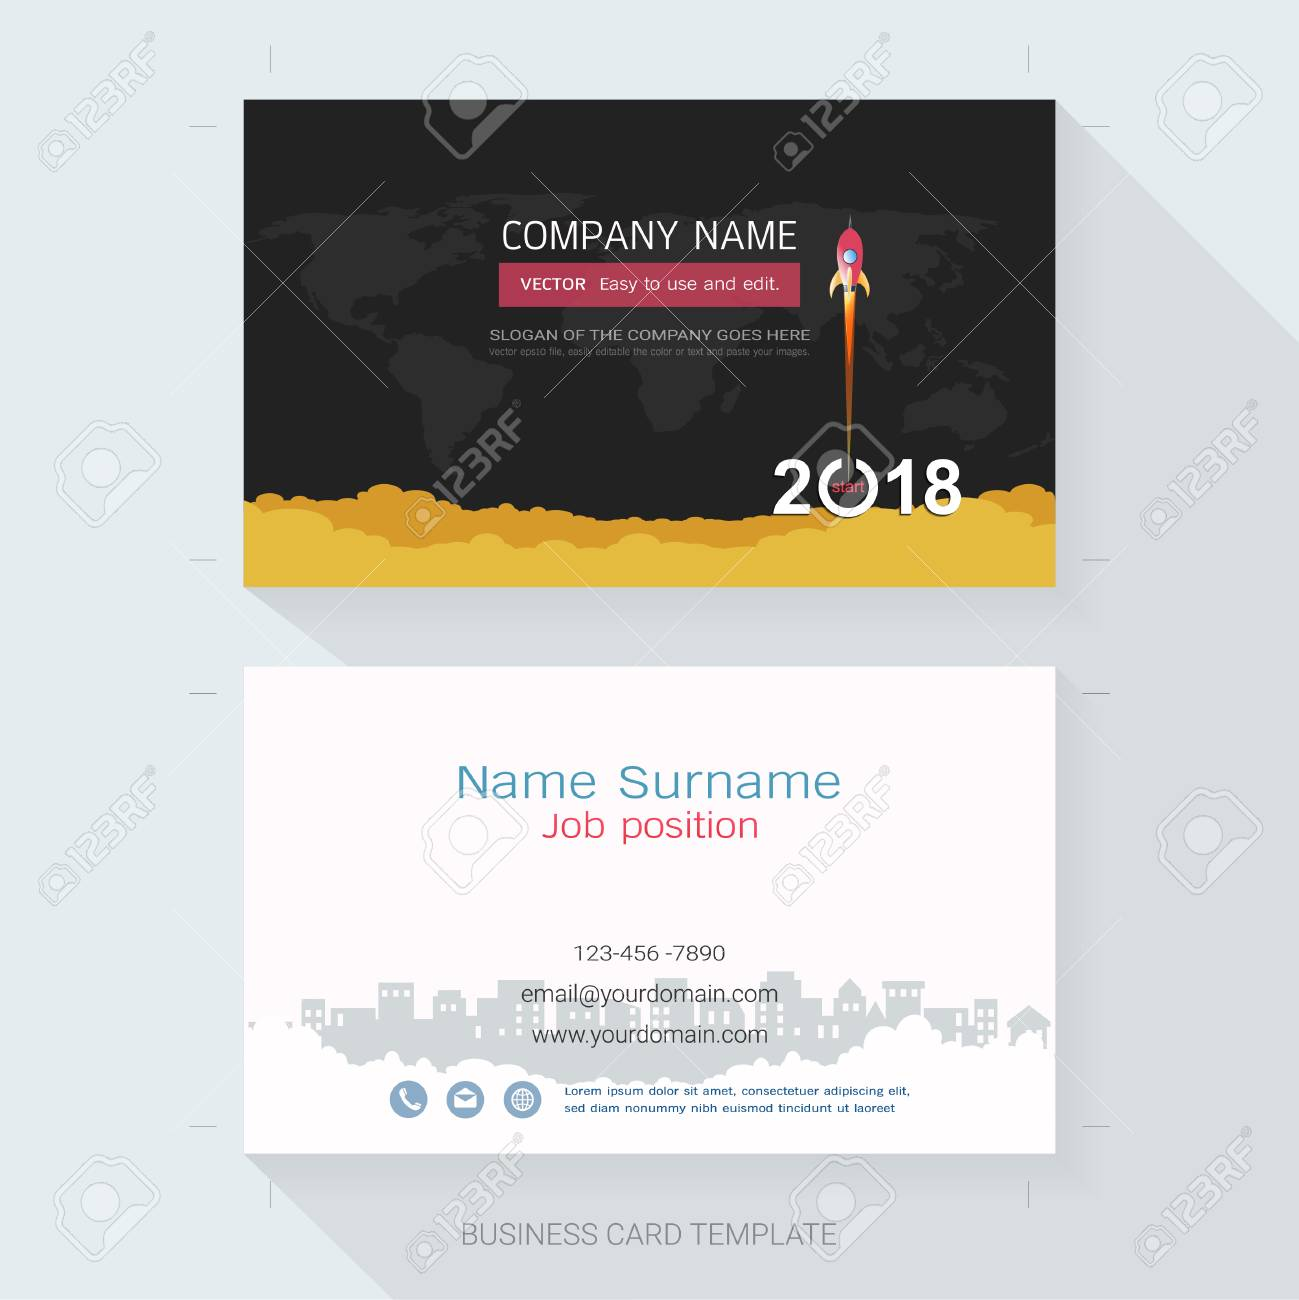 Name Card Or Business Card Design Template The Style Is Simple